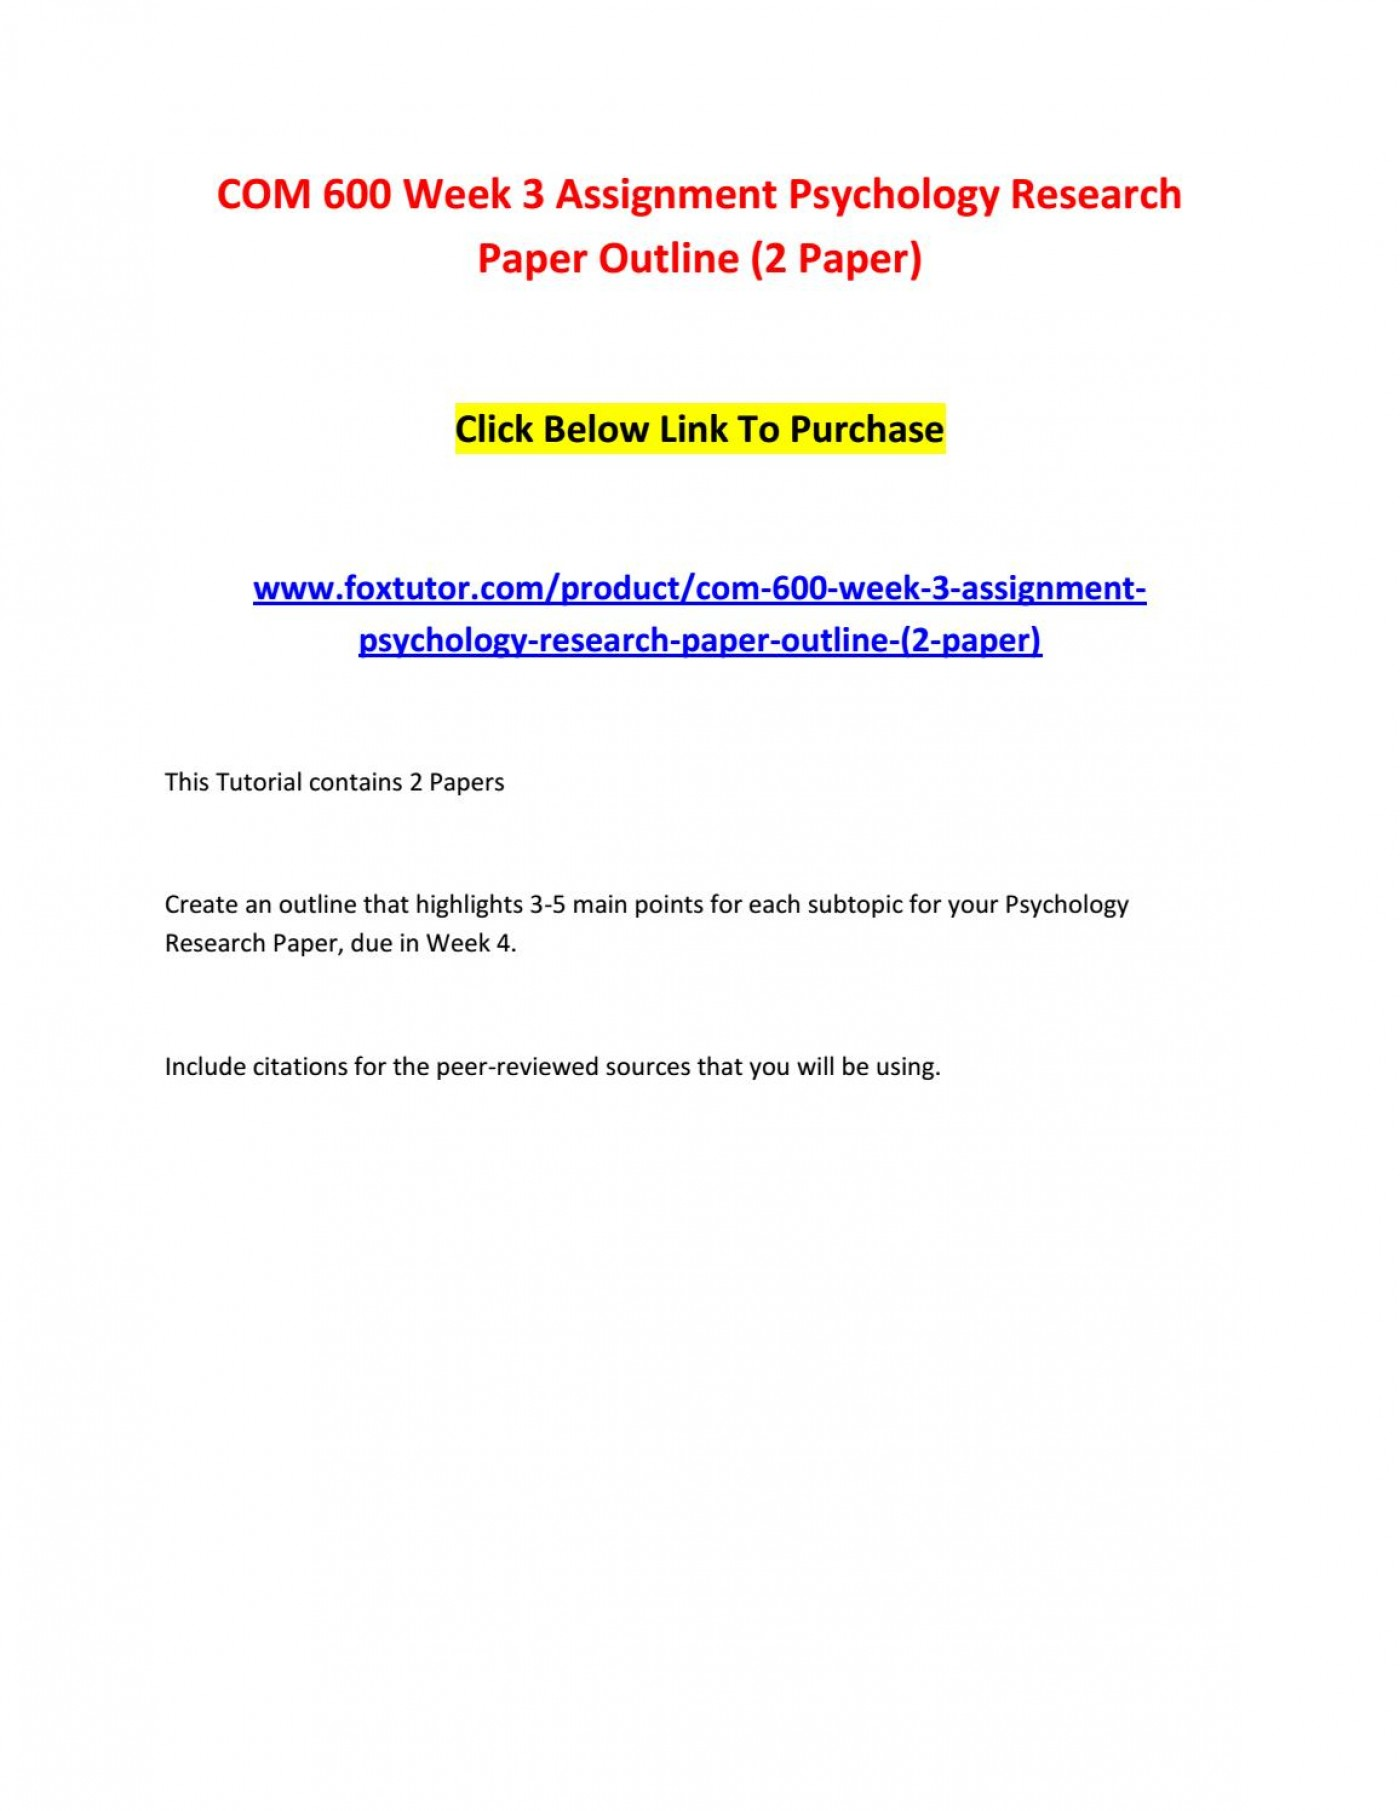 003 Page 1 Psychology Research Paper Outline Com Striking 600 Com/600 1400